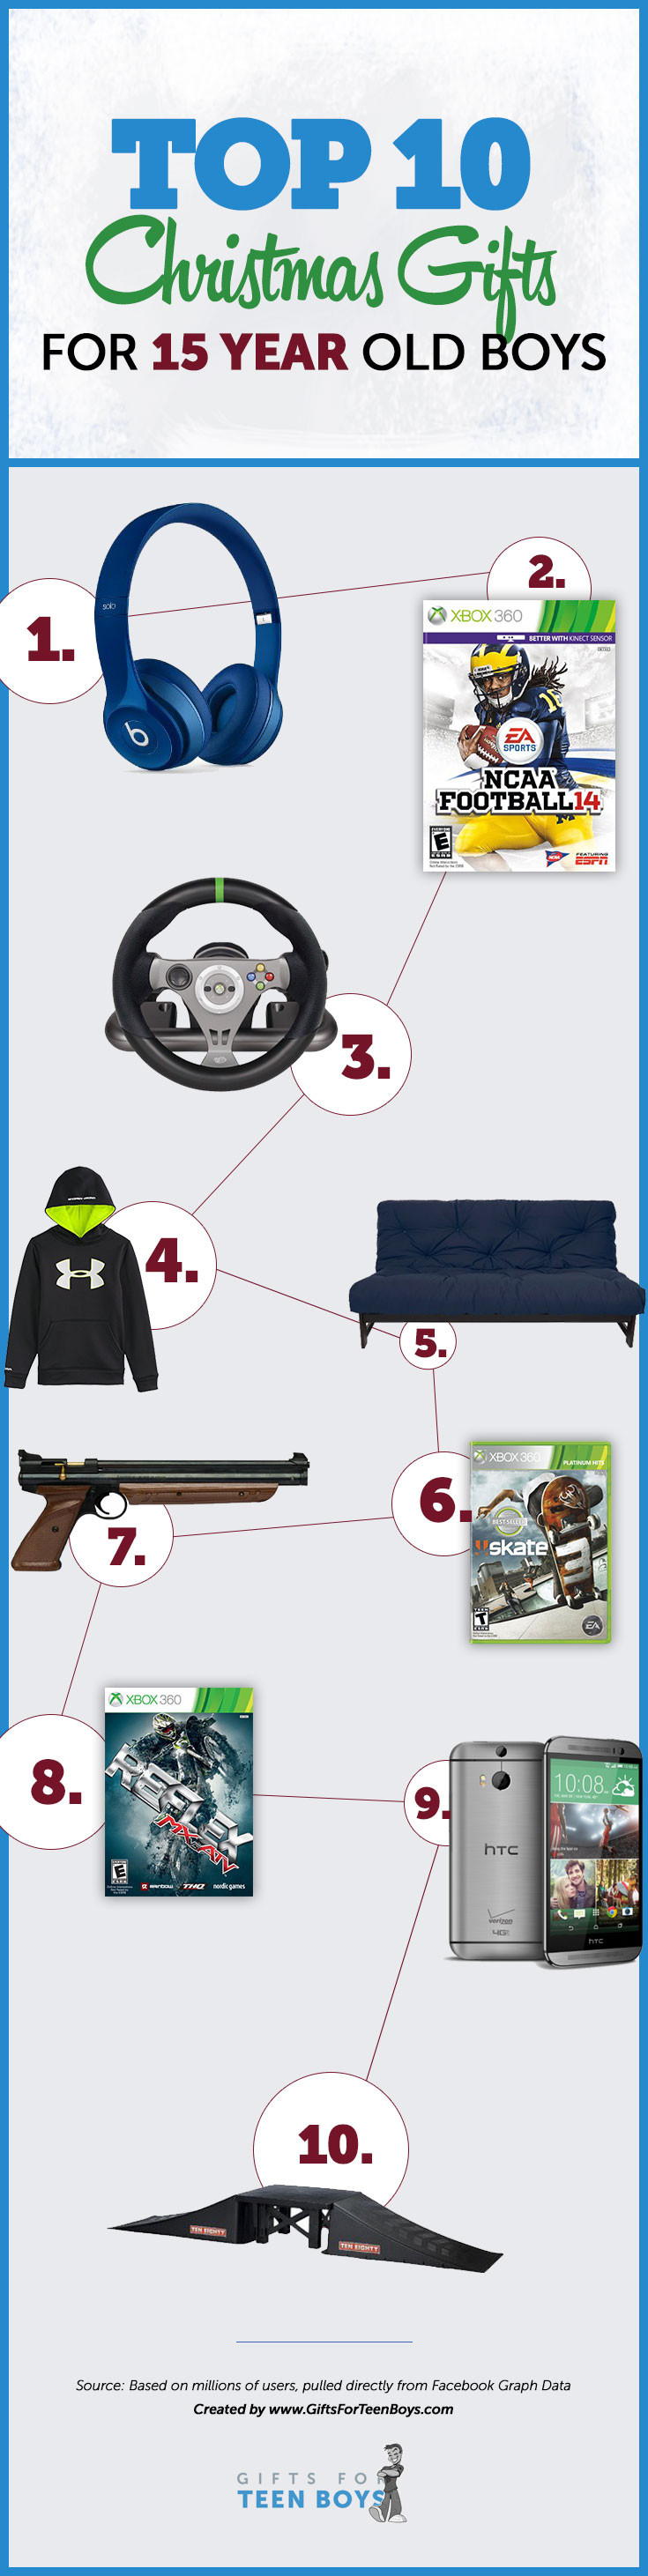 Christmas Gift Ideas 15 Year Old Boy  Christmas Gifts 15 Year Old Boys